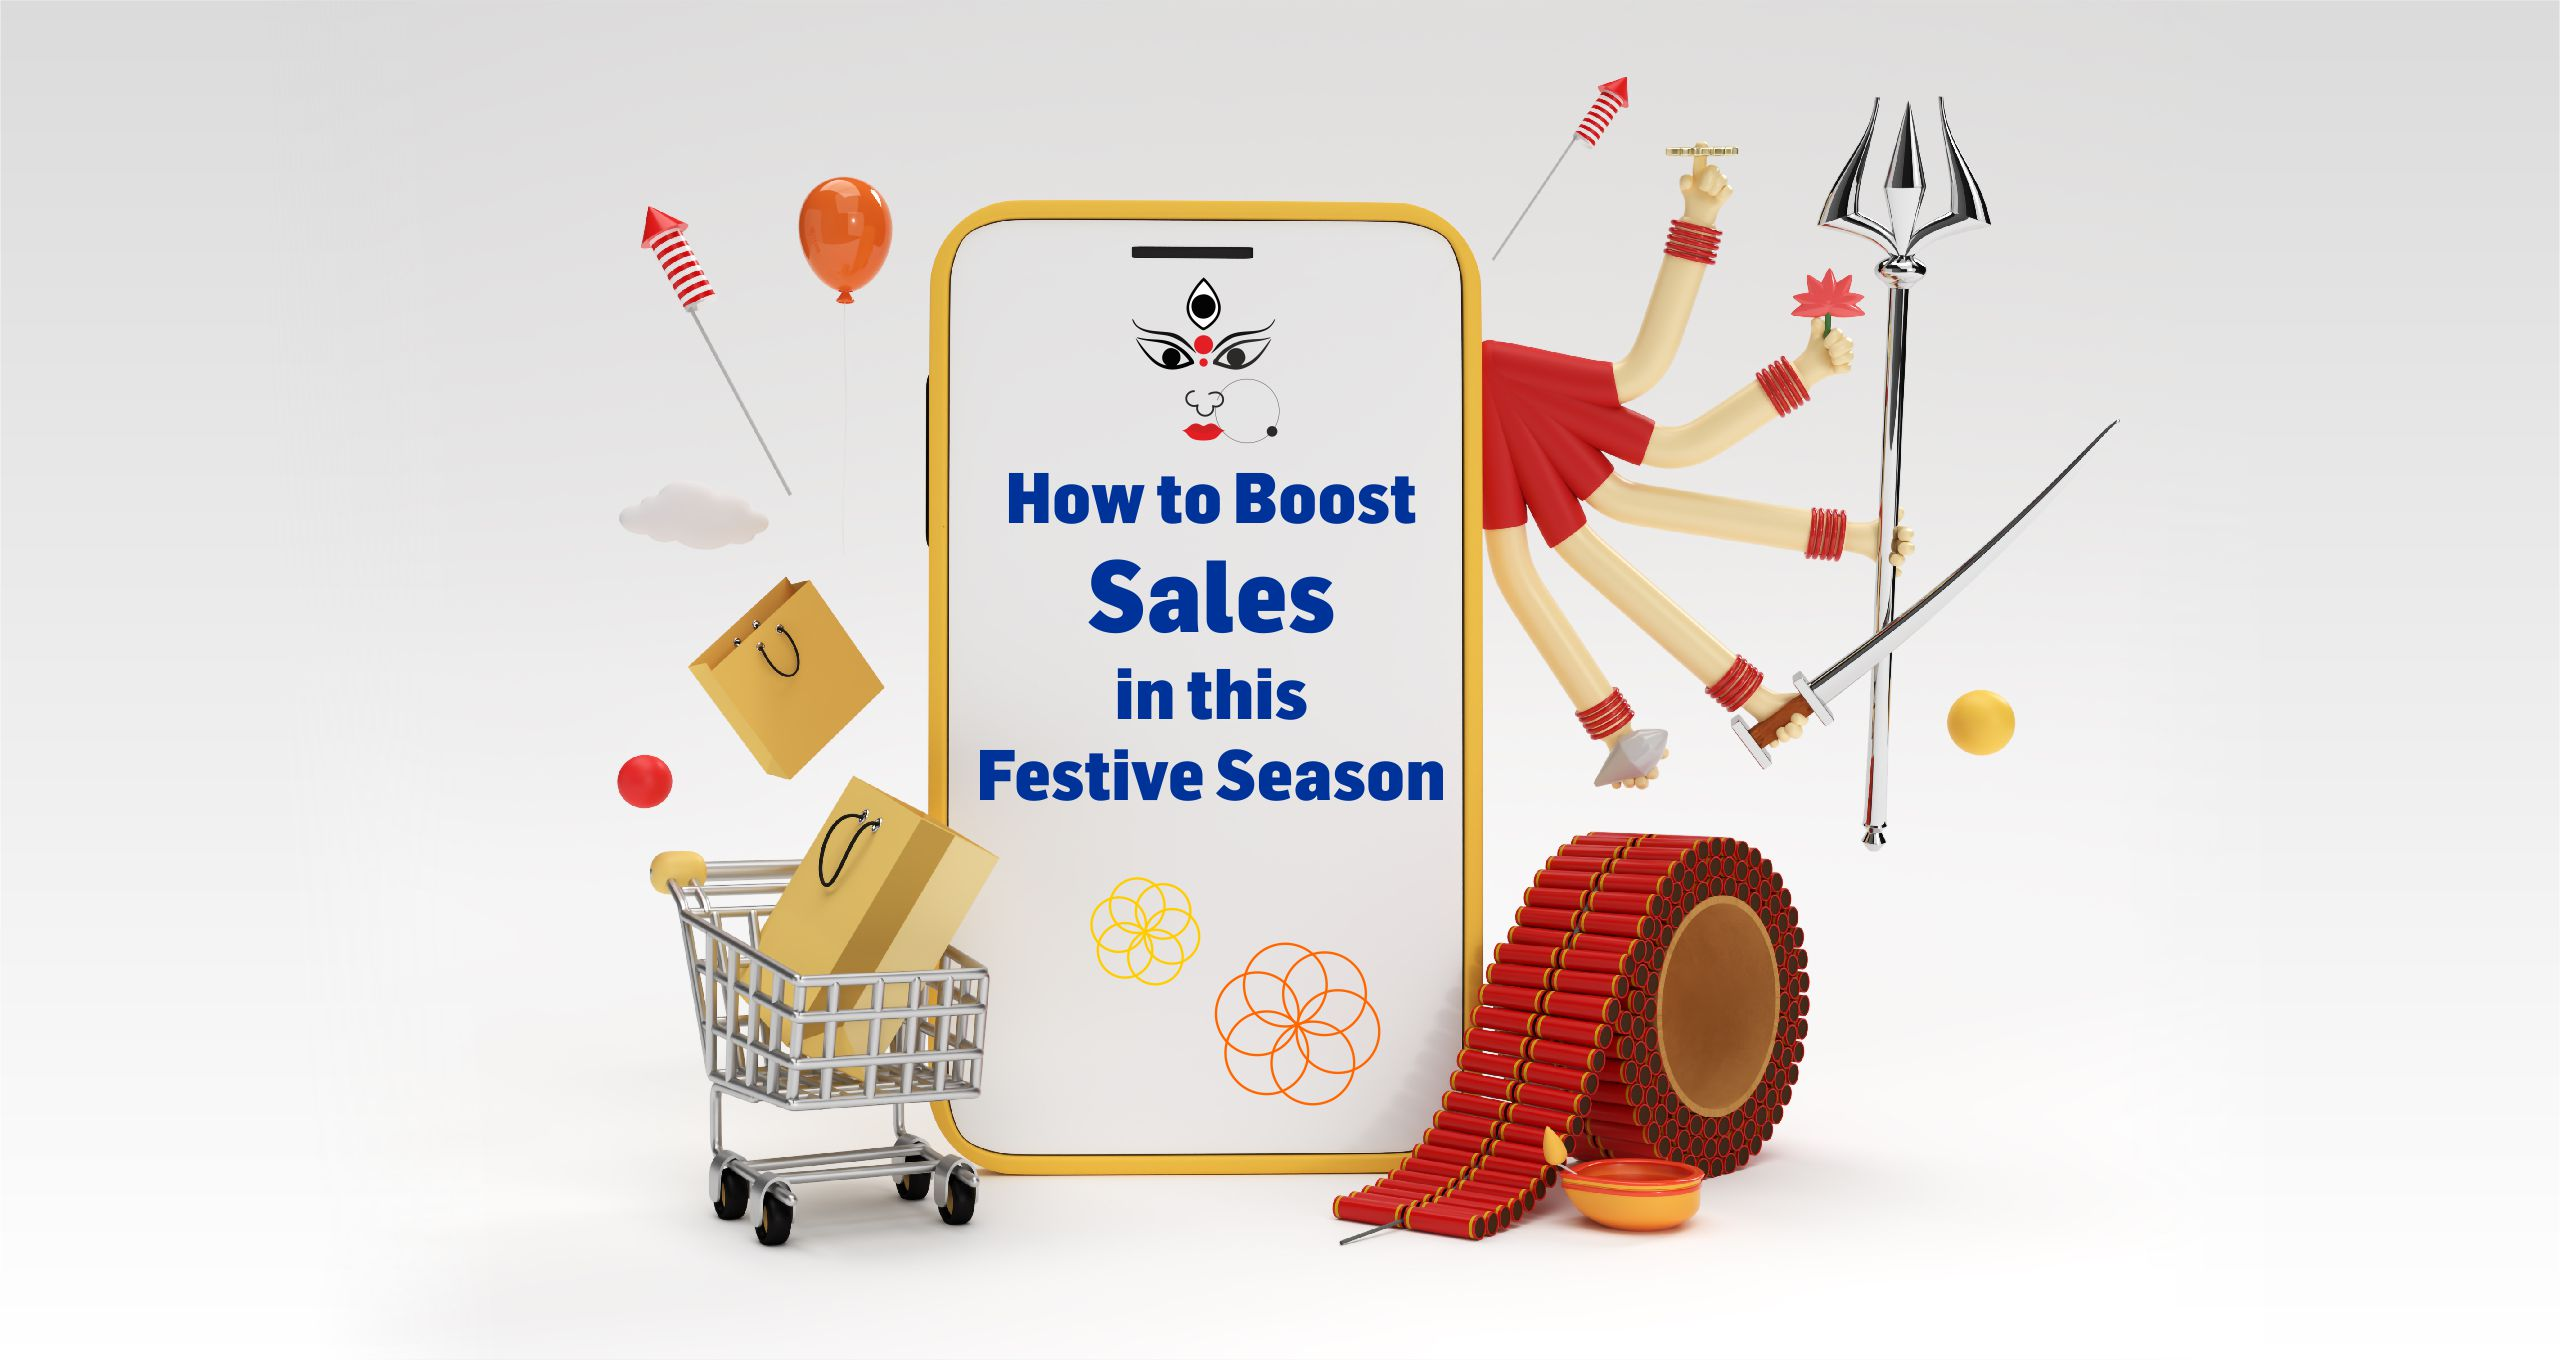 How to Boost Sales in this festive season